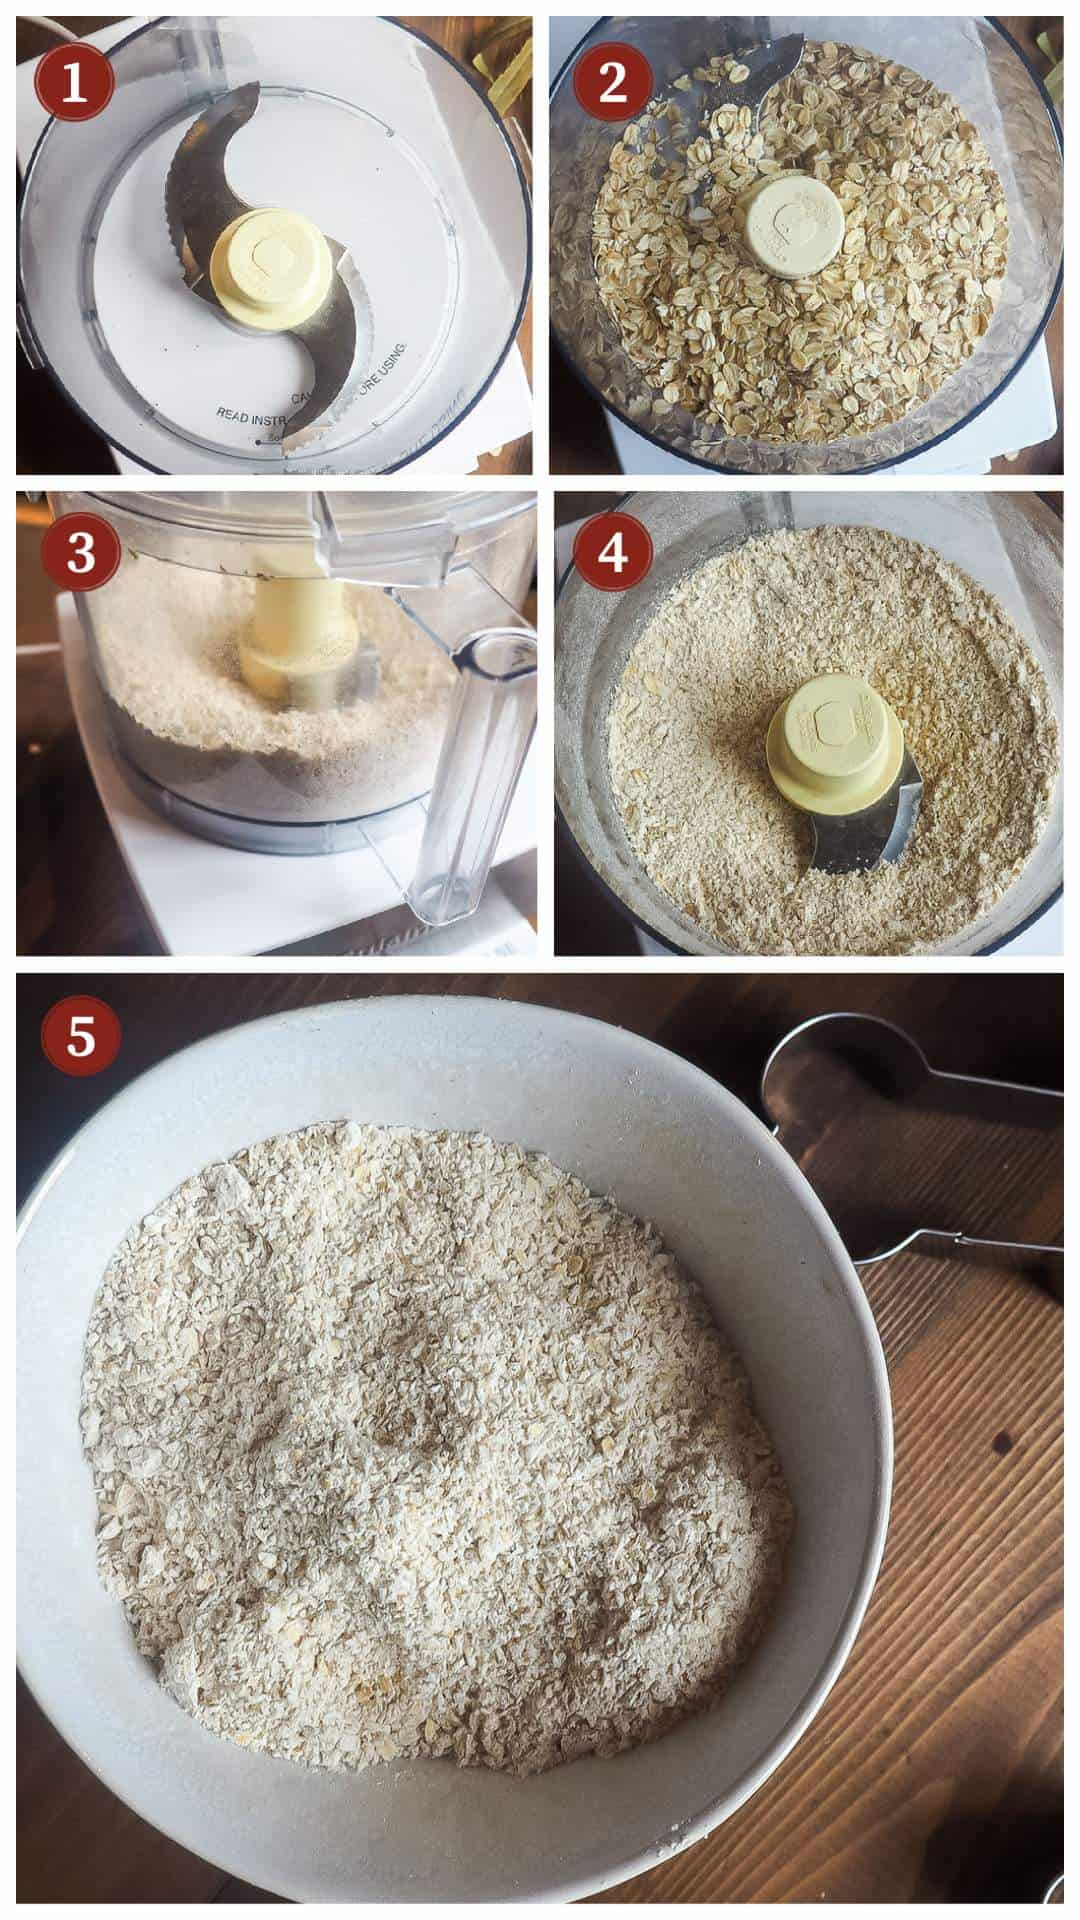 A collage of images showing how to make oat flour for sweet potato and cranberry dog treats, steps 1 - 5.